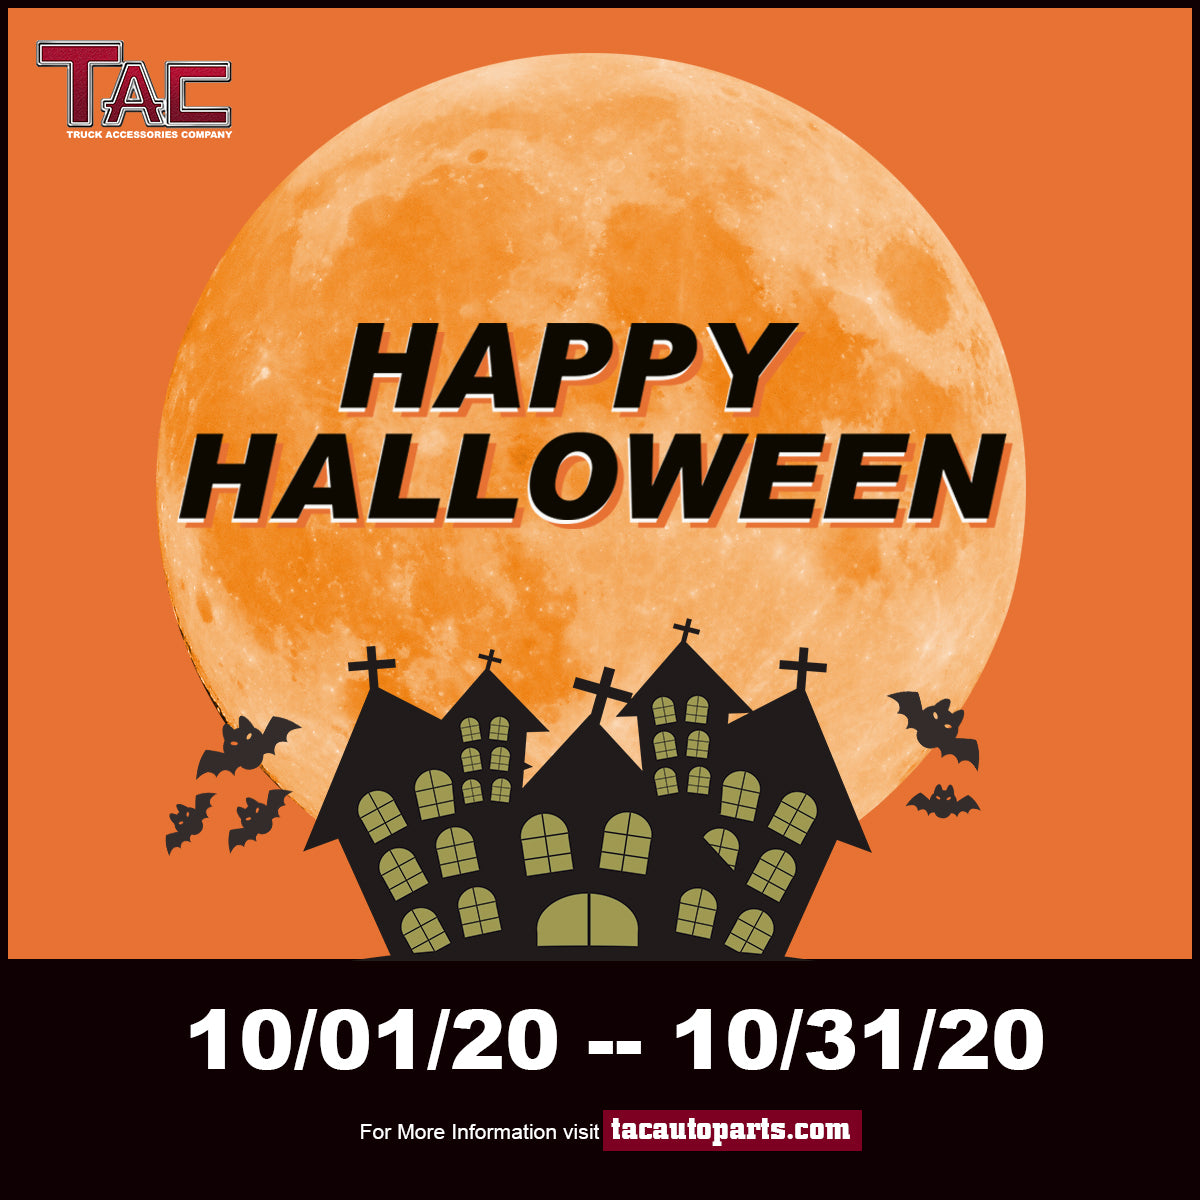 TAC Halloween Promotion from October 1st to October 9th